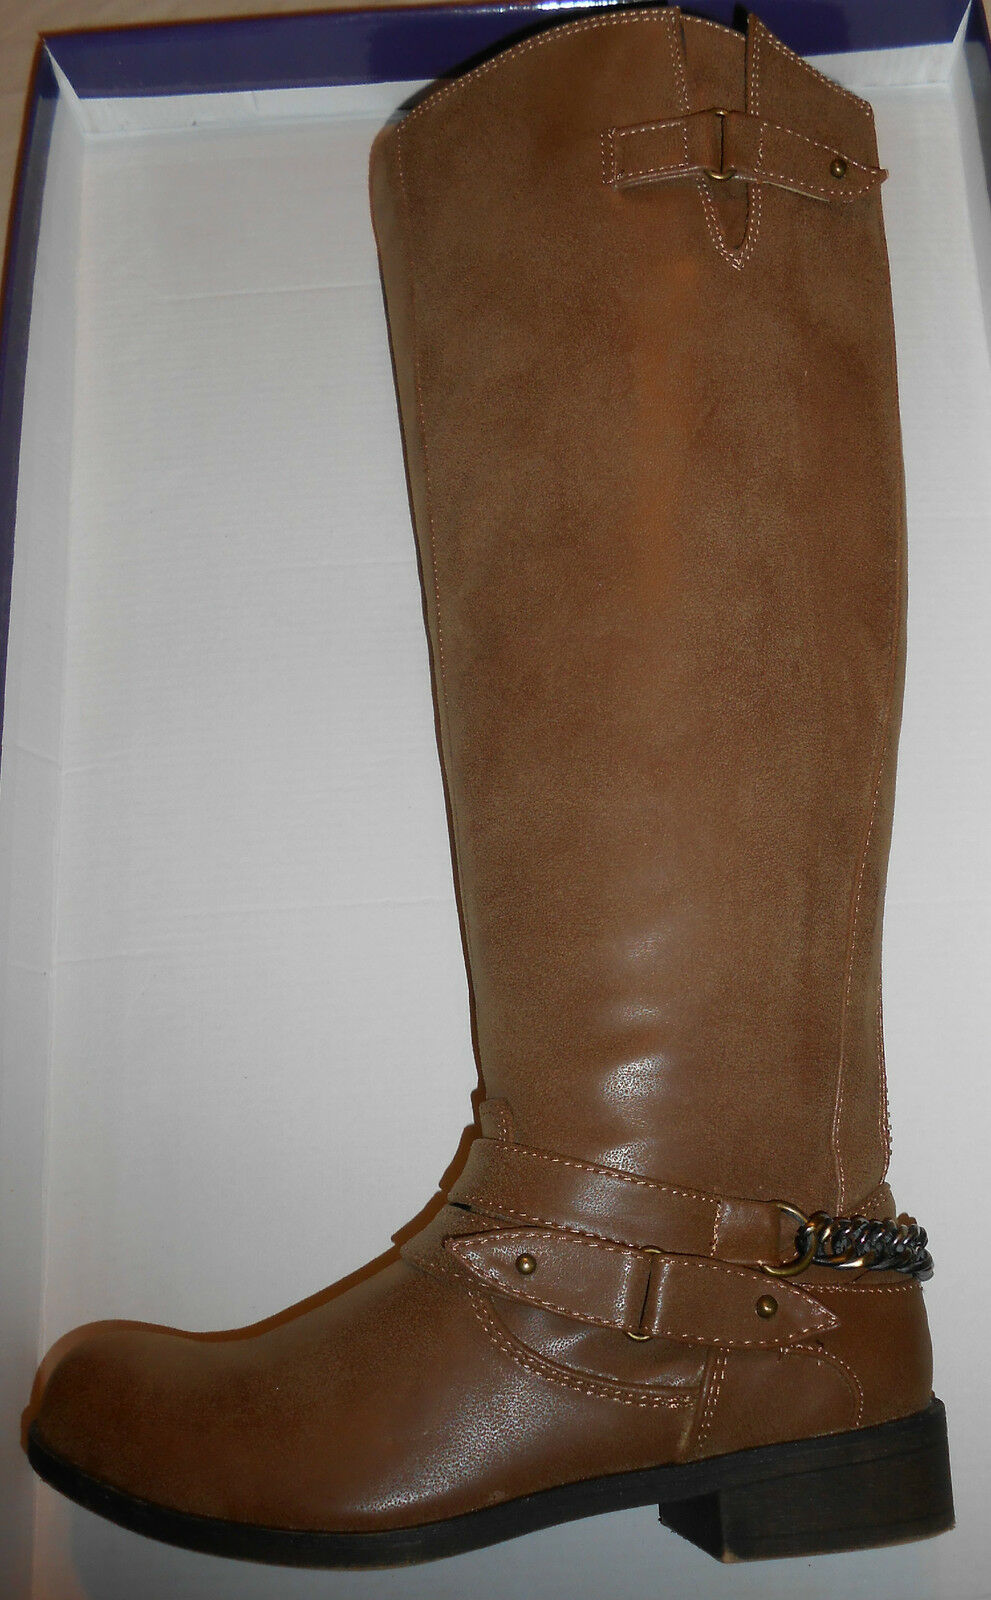 Madden Girl Boots Size 6 Womens Brown Cognac Knee High Low heel Shoes adult